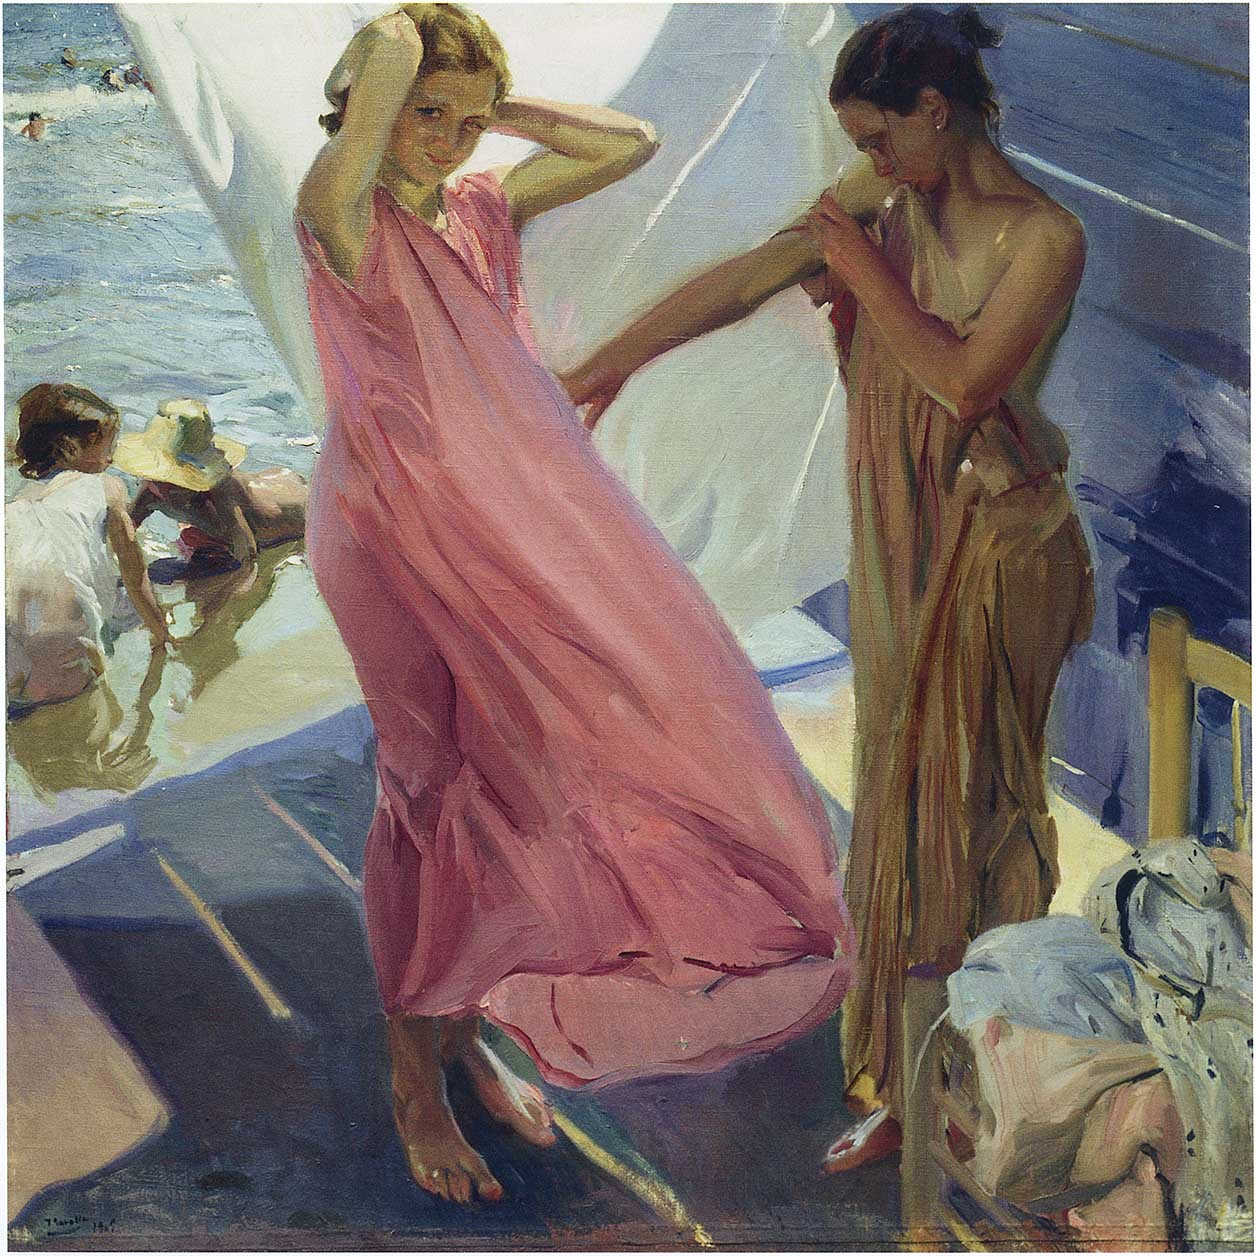 After the Bath, Valencia, 1916